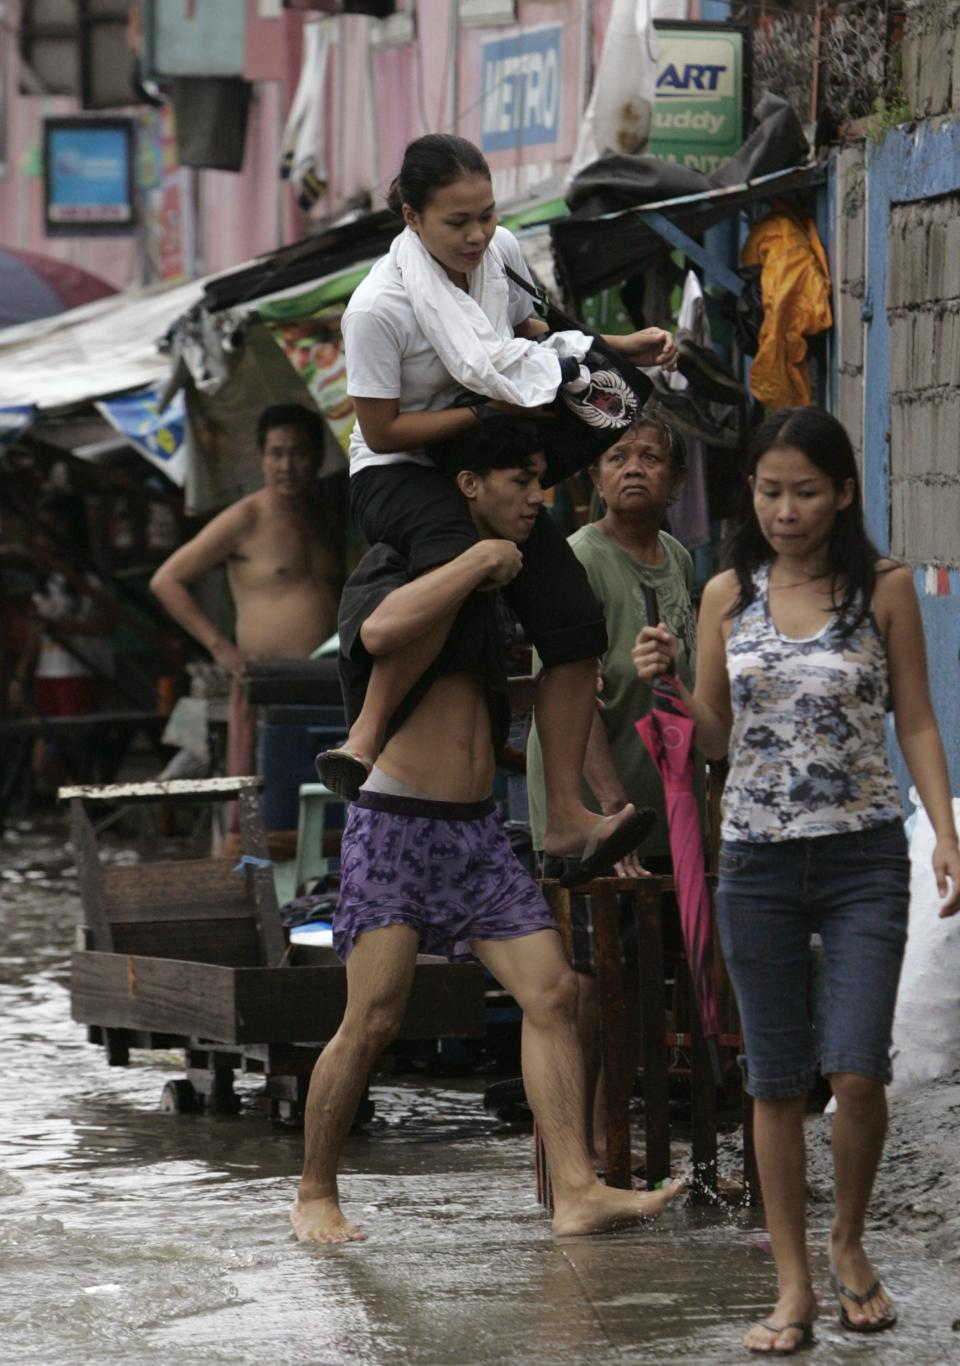 A woman rides on the man's shoulder to keep her feet dry from the flood water Tuesday, Aug. 2, 2011 in suburban Quezon City, north of Manila, Philippines. Waist-deep floods have swamped the streets in the Philippine capital after a night of monsoon rains closed down schools and government offices.  (AP Photo/Pat Roque)